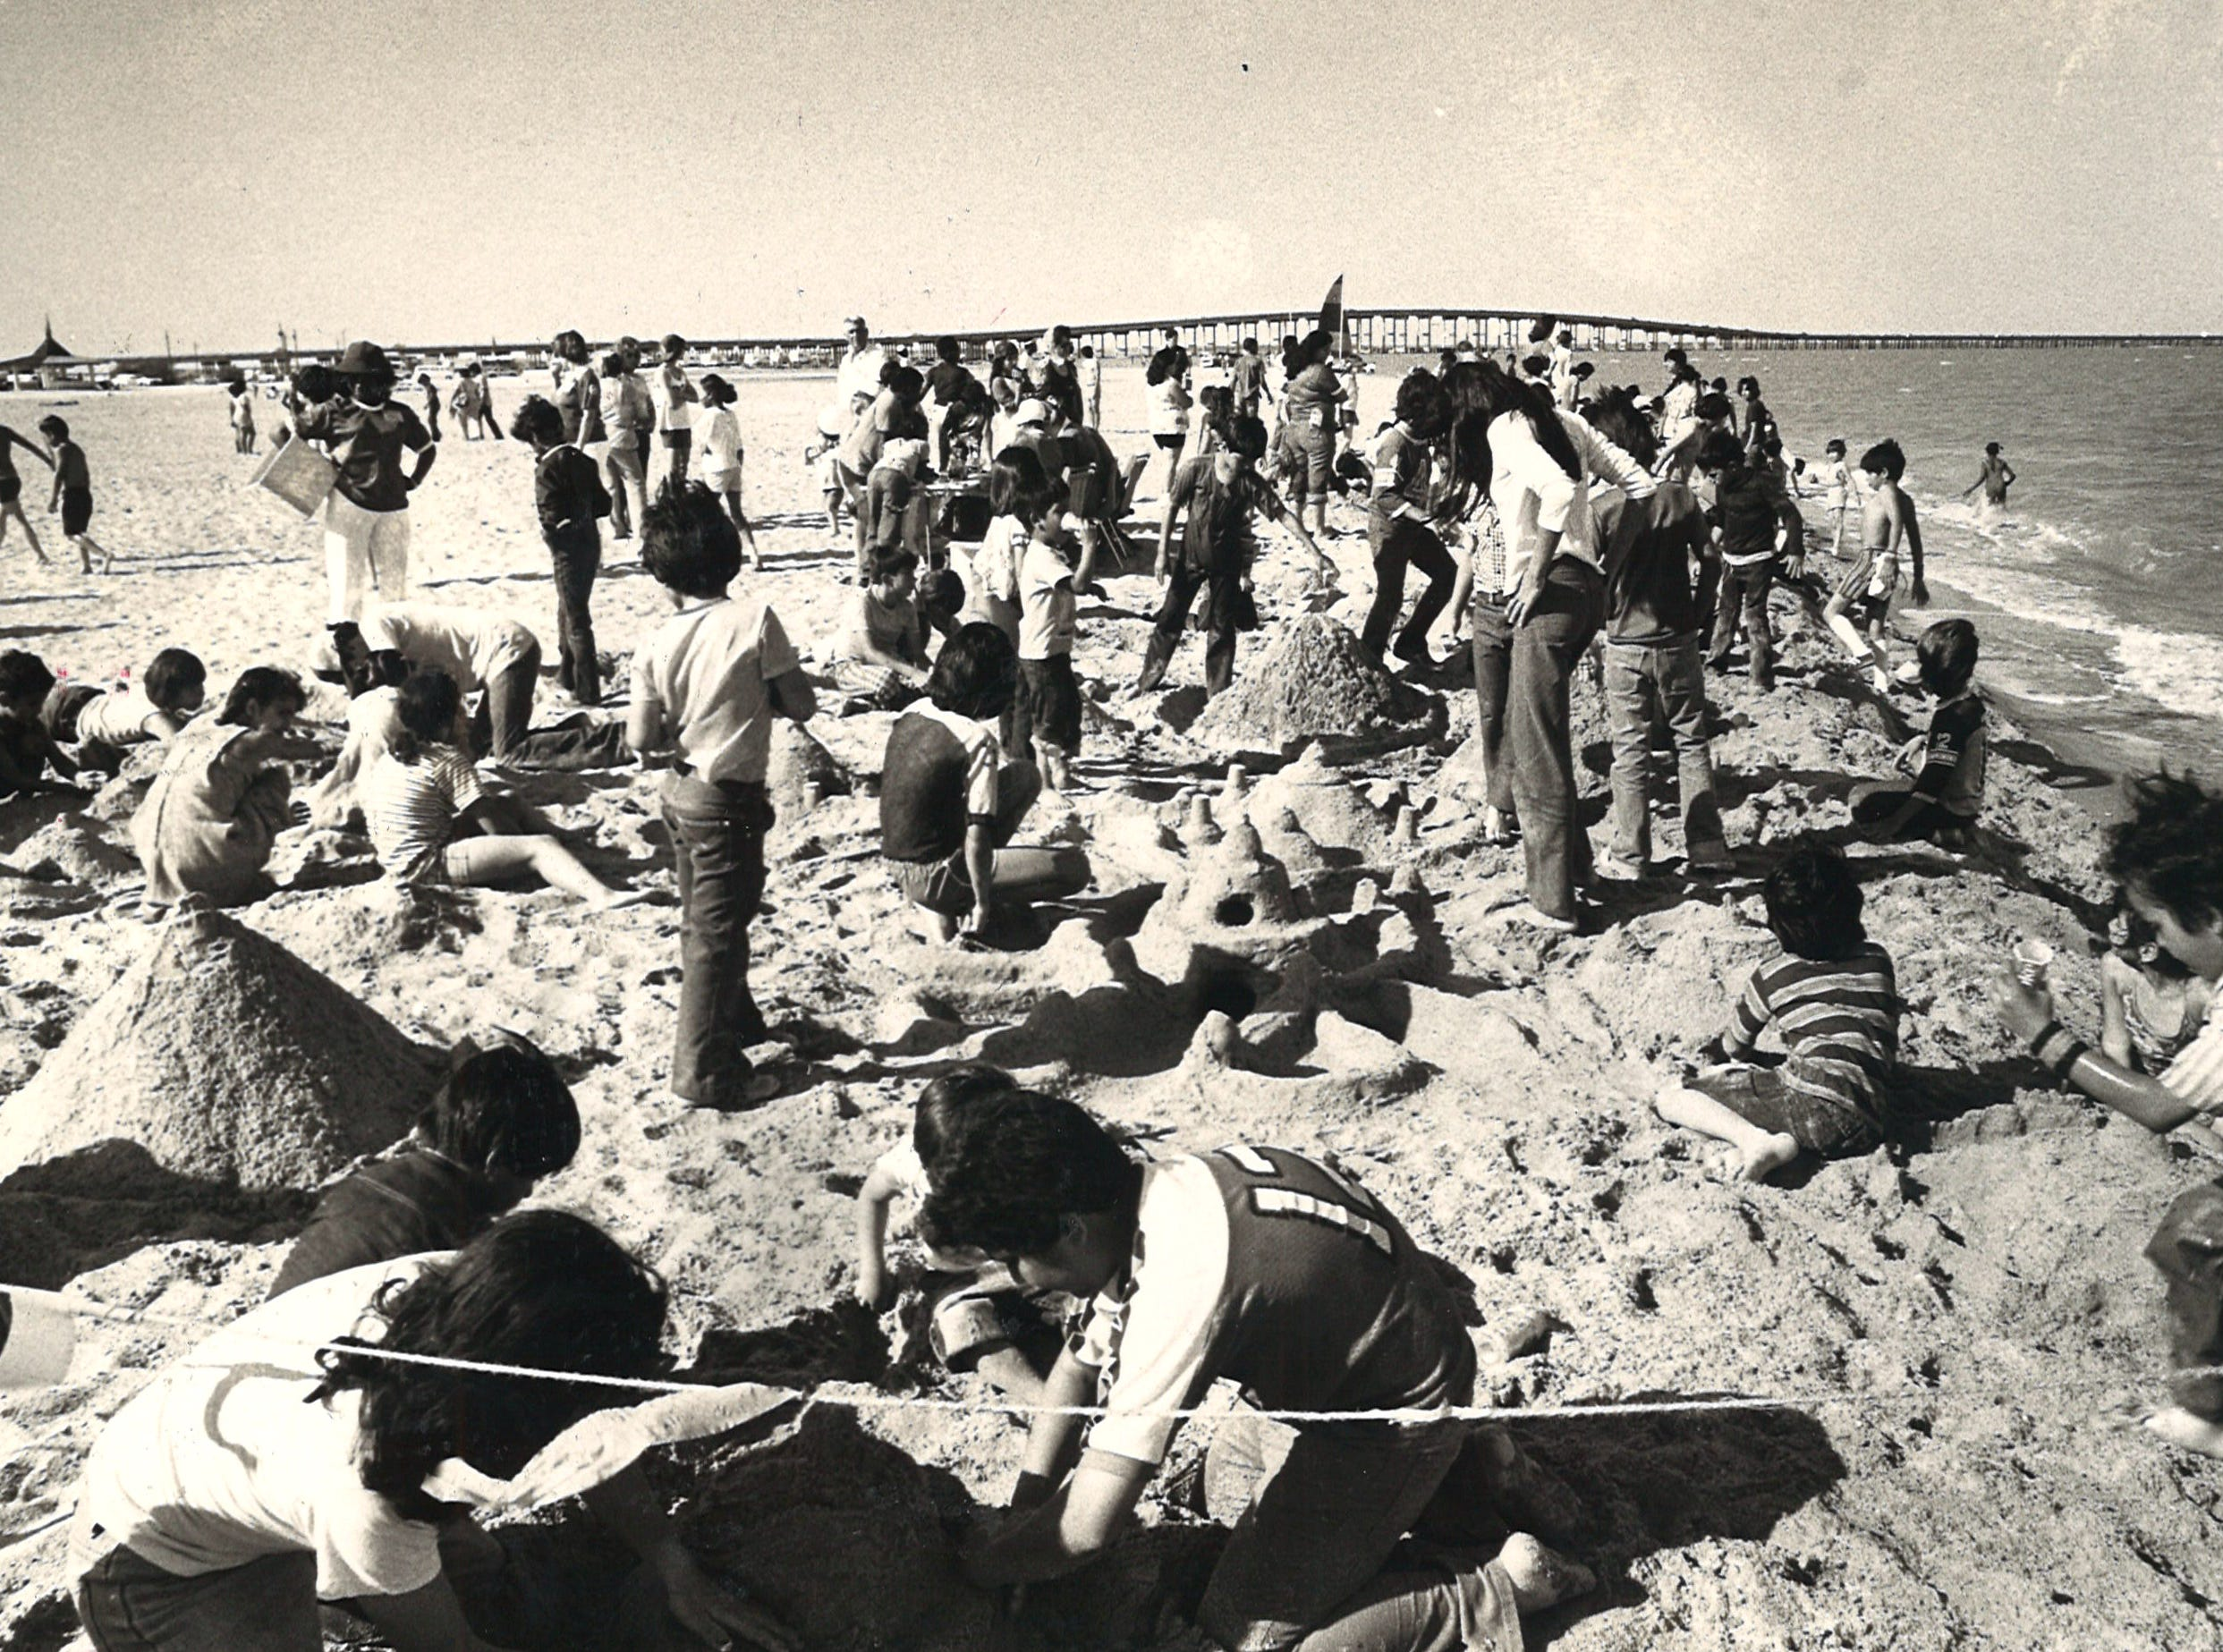 People dig in the sand during a sand castle building competition on North Beach, named Corpus Christi Beach at the time, in March 1978. The competition was part of the festivities to celebrate the completion of a beach restoration project.